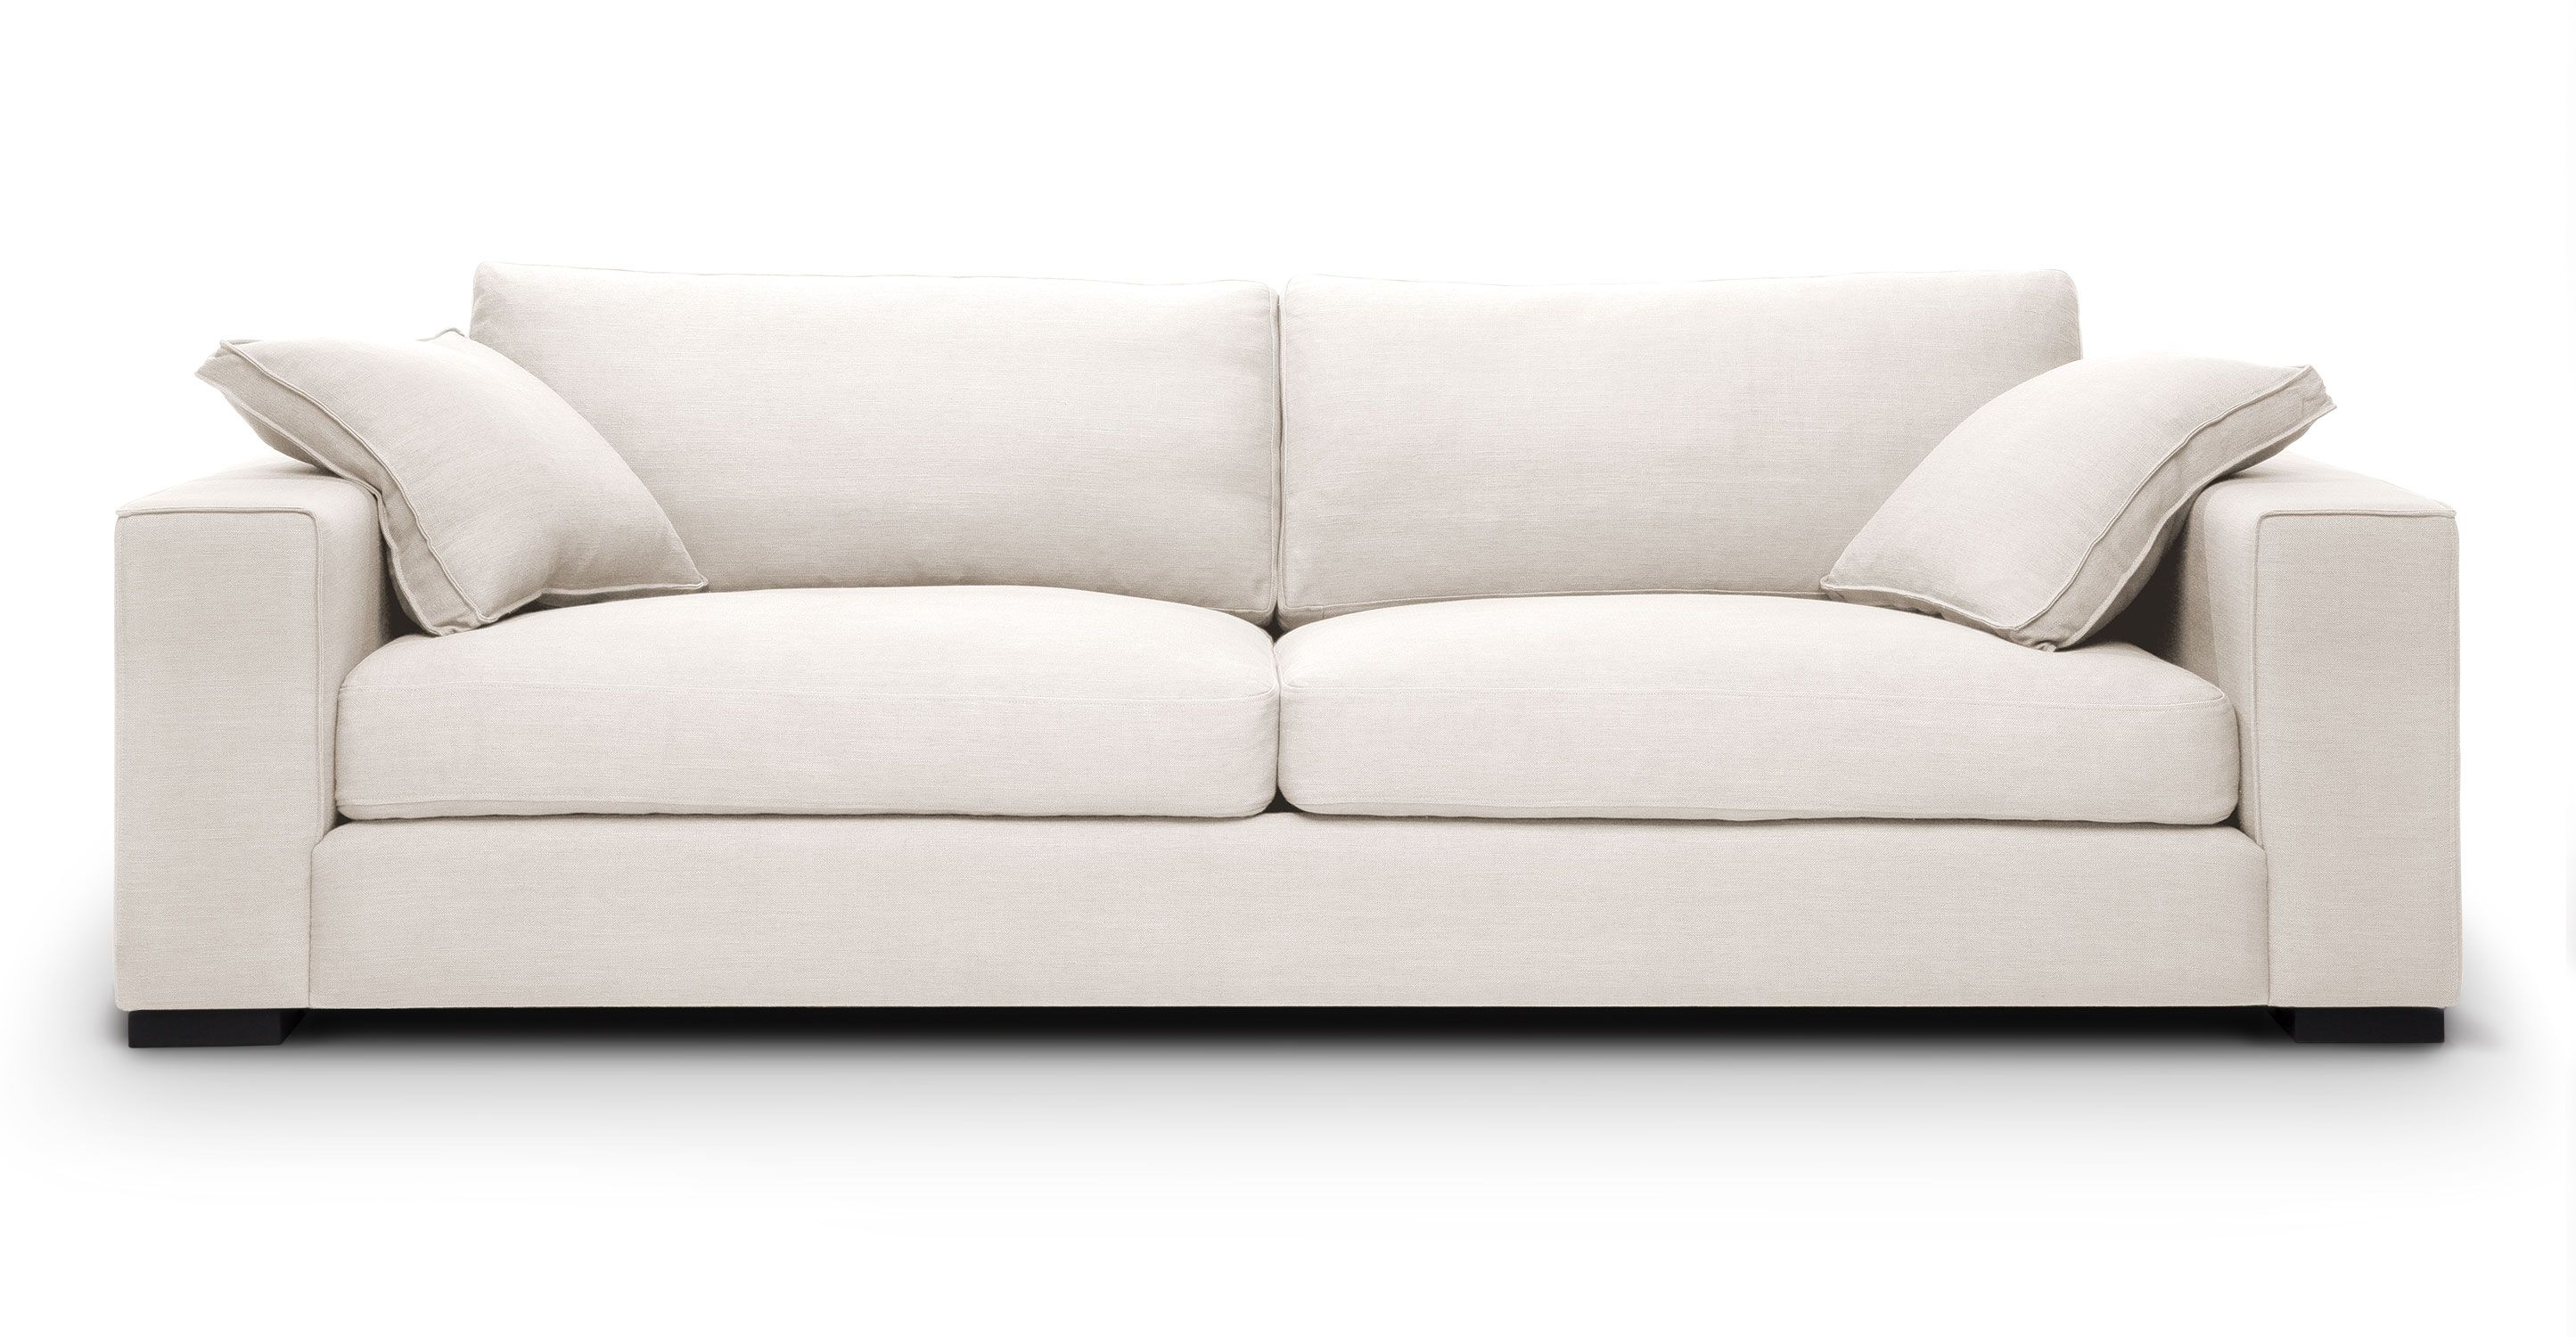 Sitka Quartz White Sofa Sofas Article Modern Mid Century And Scandinavian Furniture